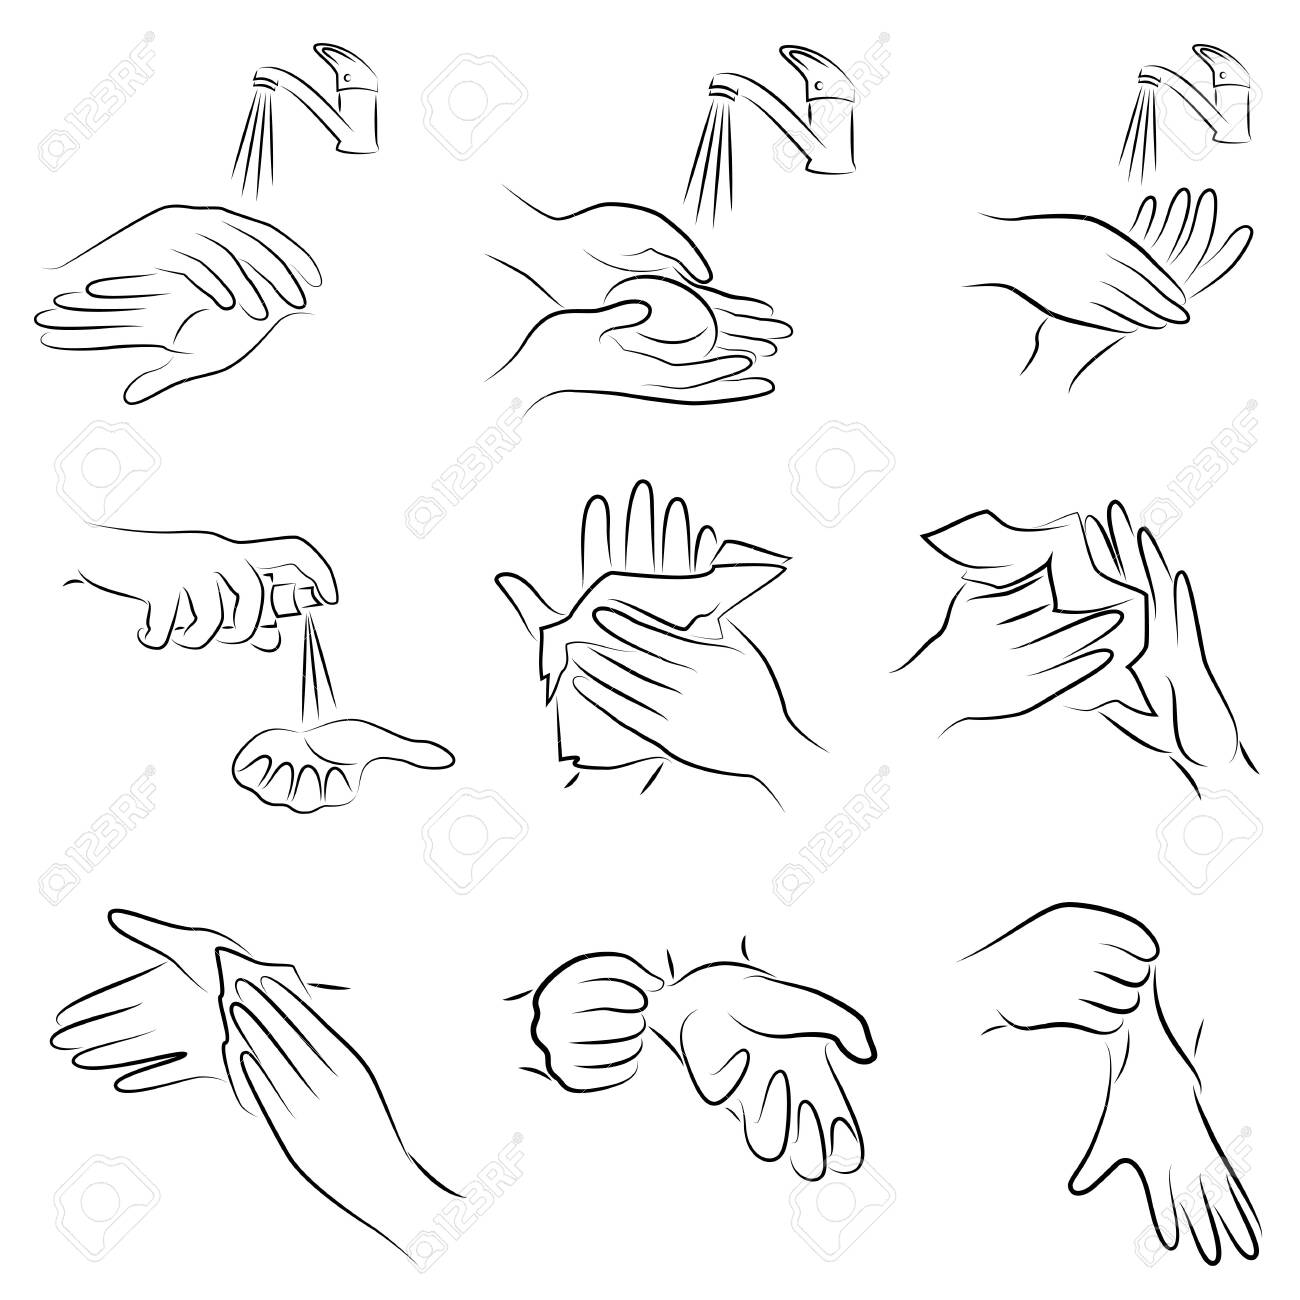 Collection of hygiene procedures. Wash your hands with soap under the tap, wipe with a napkin, treat with an antiseptic, wear rubber gloves. Vector illustration of a set - 148502209